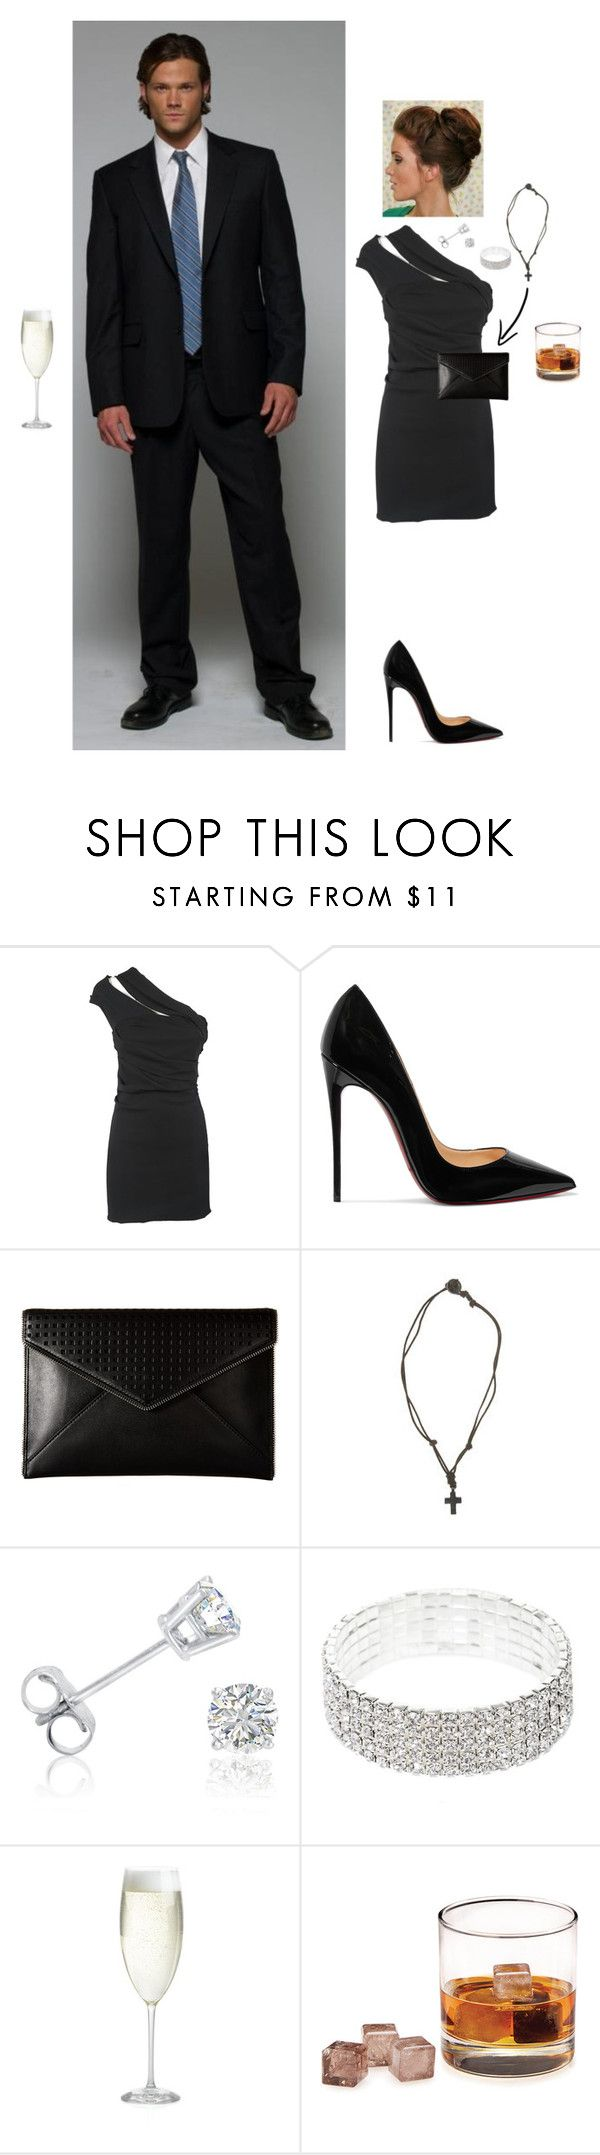 """""""Undercover: Sam's Wife at a Party"""" by steviepizza ❤ liked on Polyvore featuring SAM., Dsquared2, Christian Louboutin, Rebecca Minkoff, American Eagle Outfitters, Amanda Rose Collection and Crate and Barrel"""